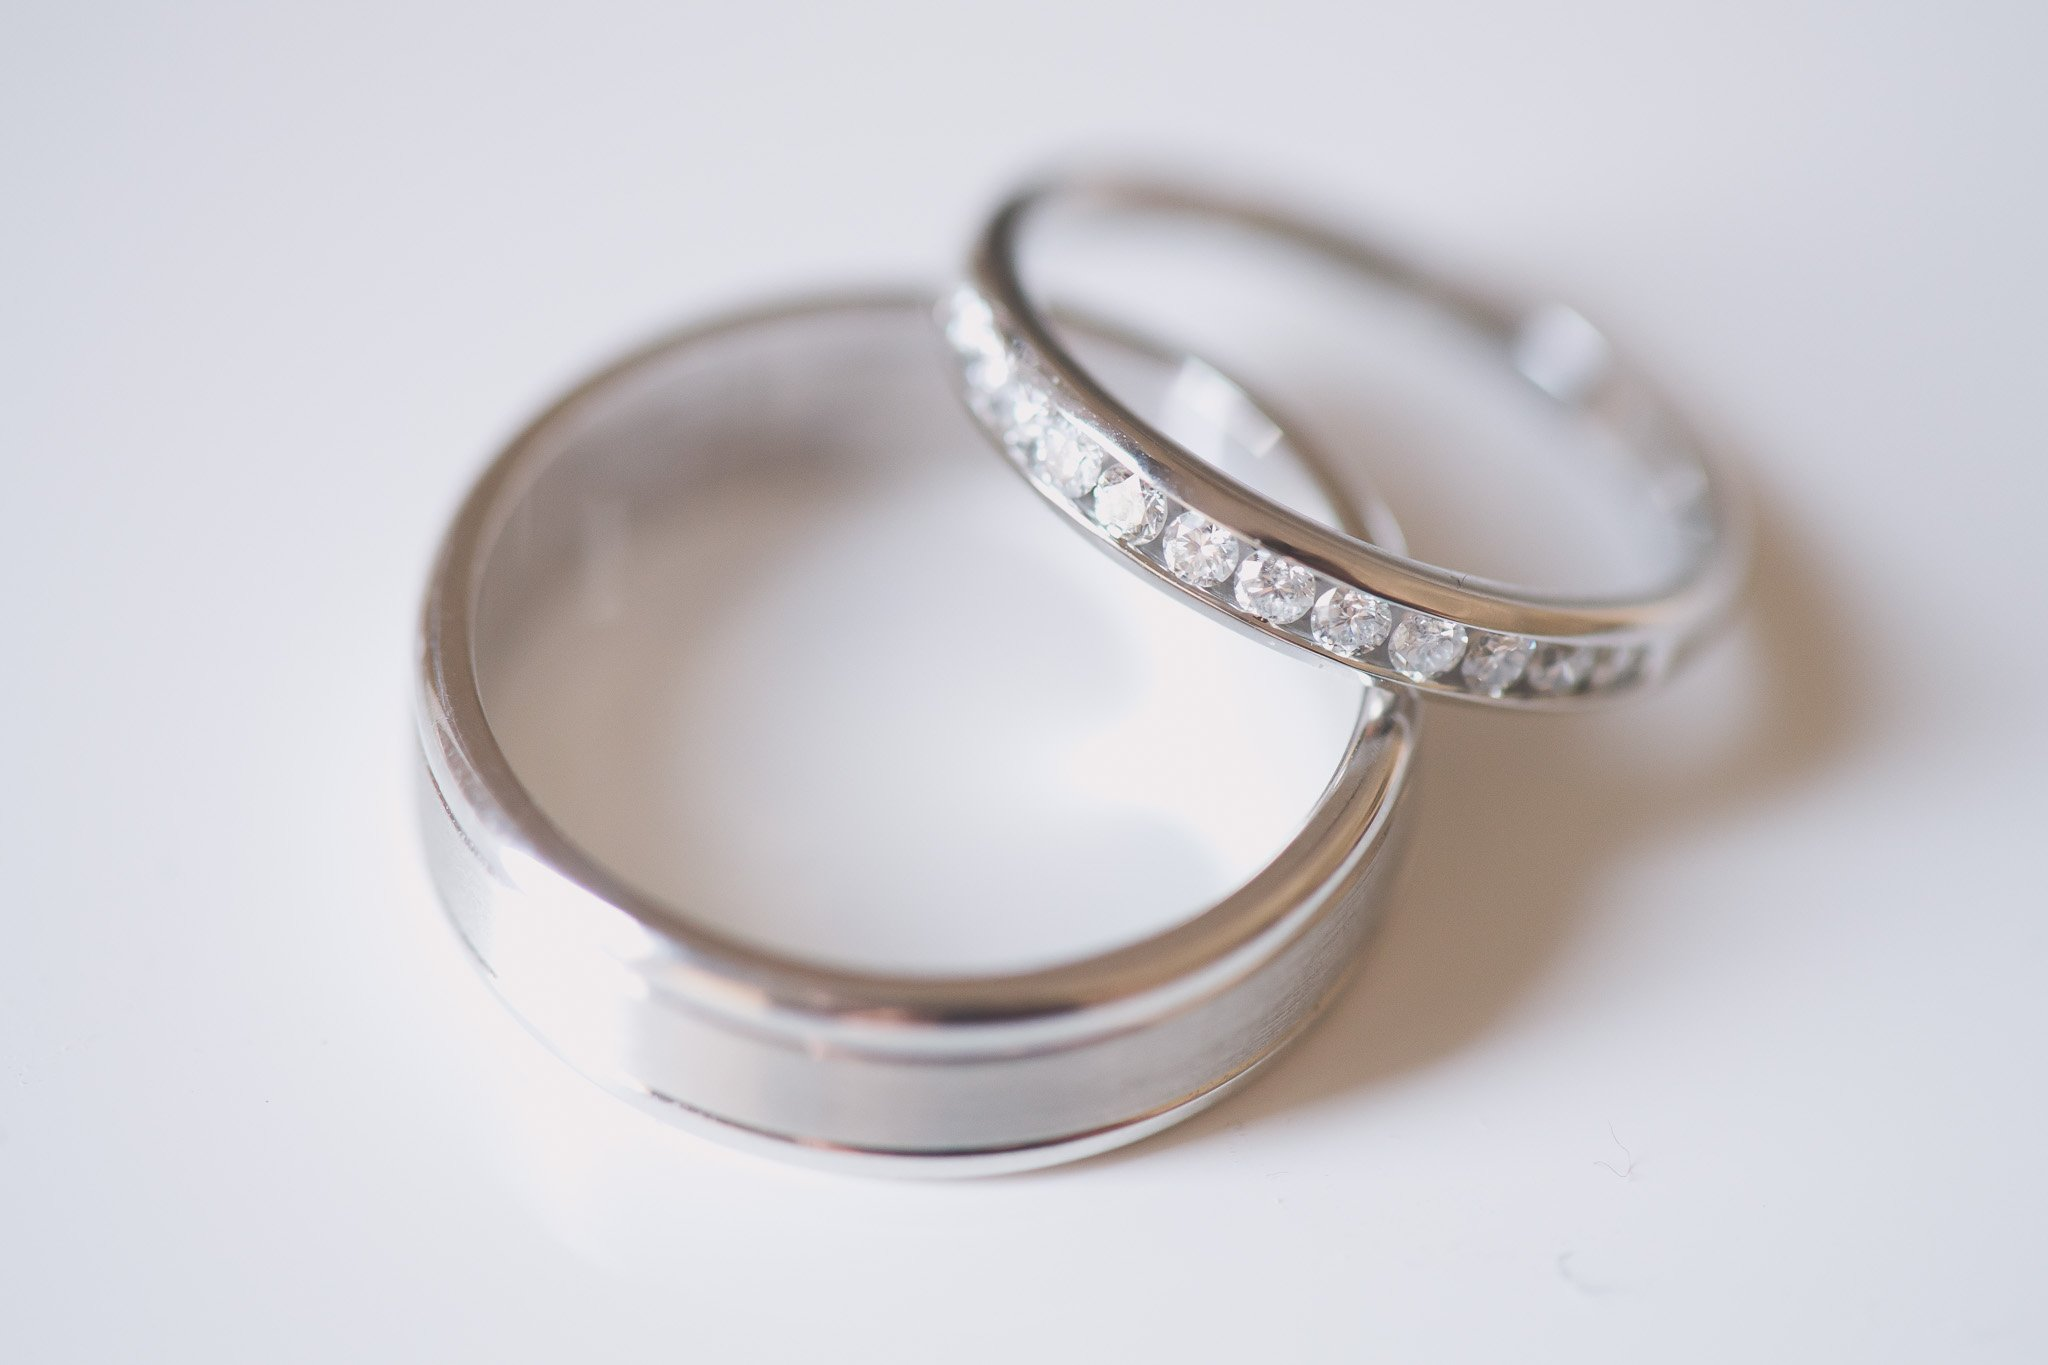 Melbourne wedding photography of detail of the wedding rings with diamonds